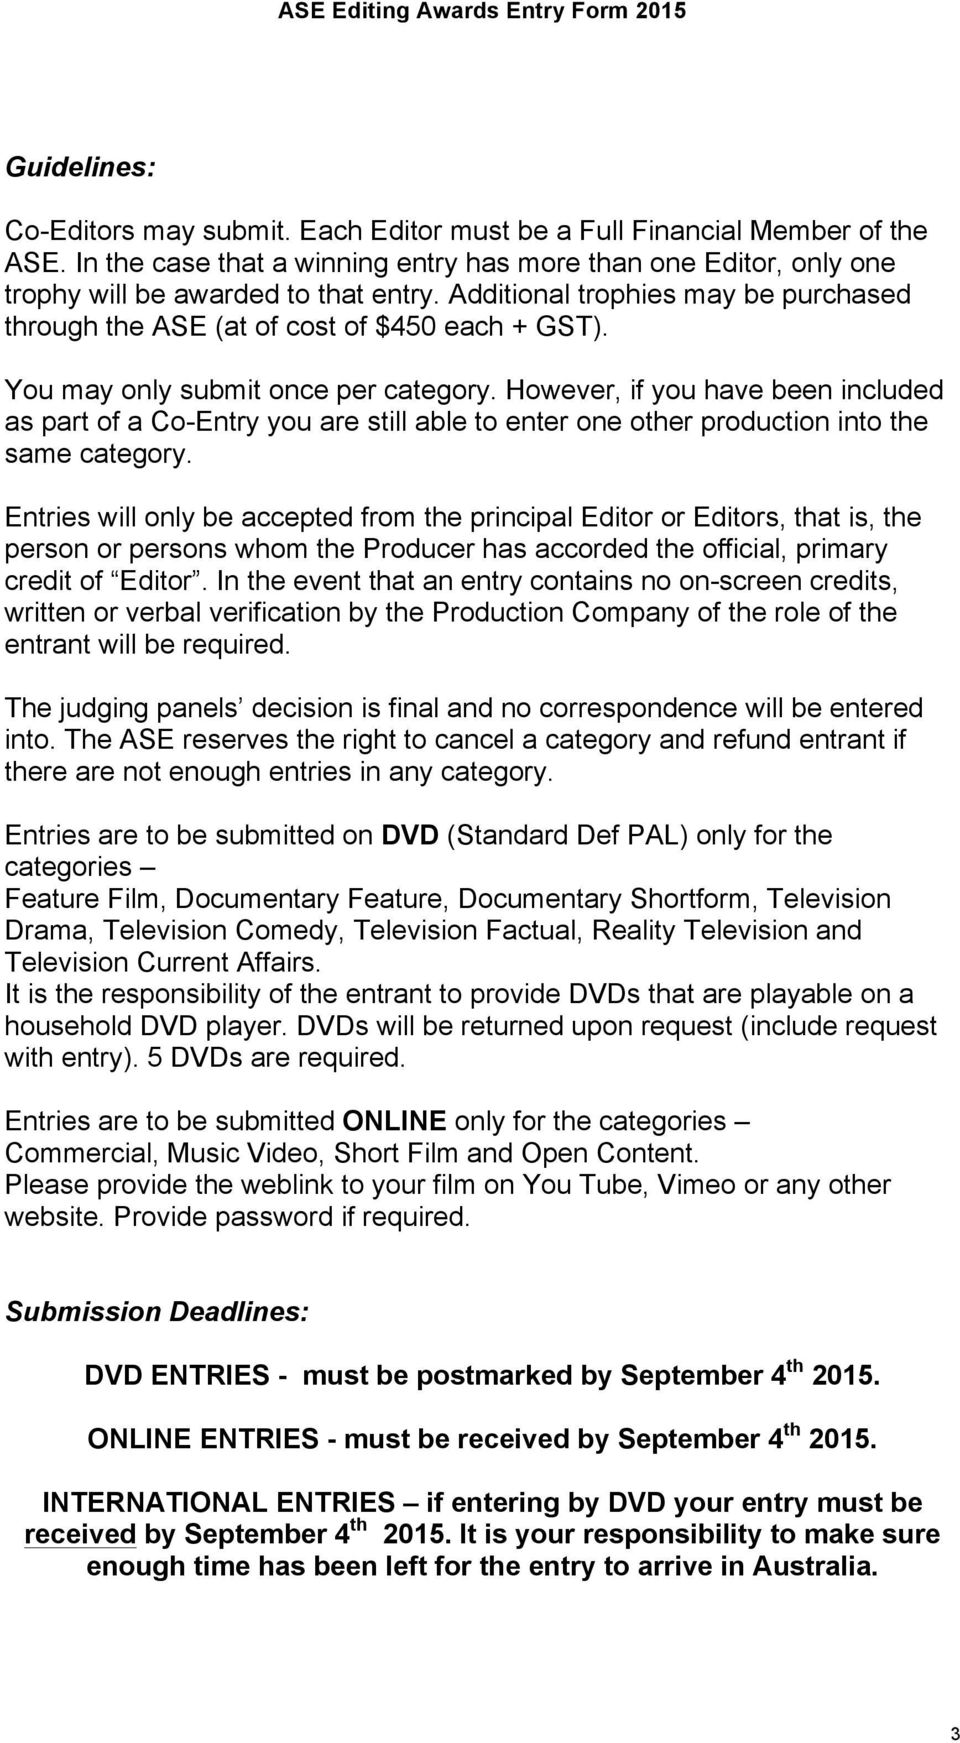 However, if you have been included as part of a Co-Entry you are still able to enter one other production into the same category.